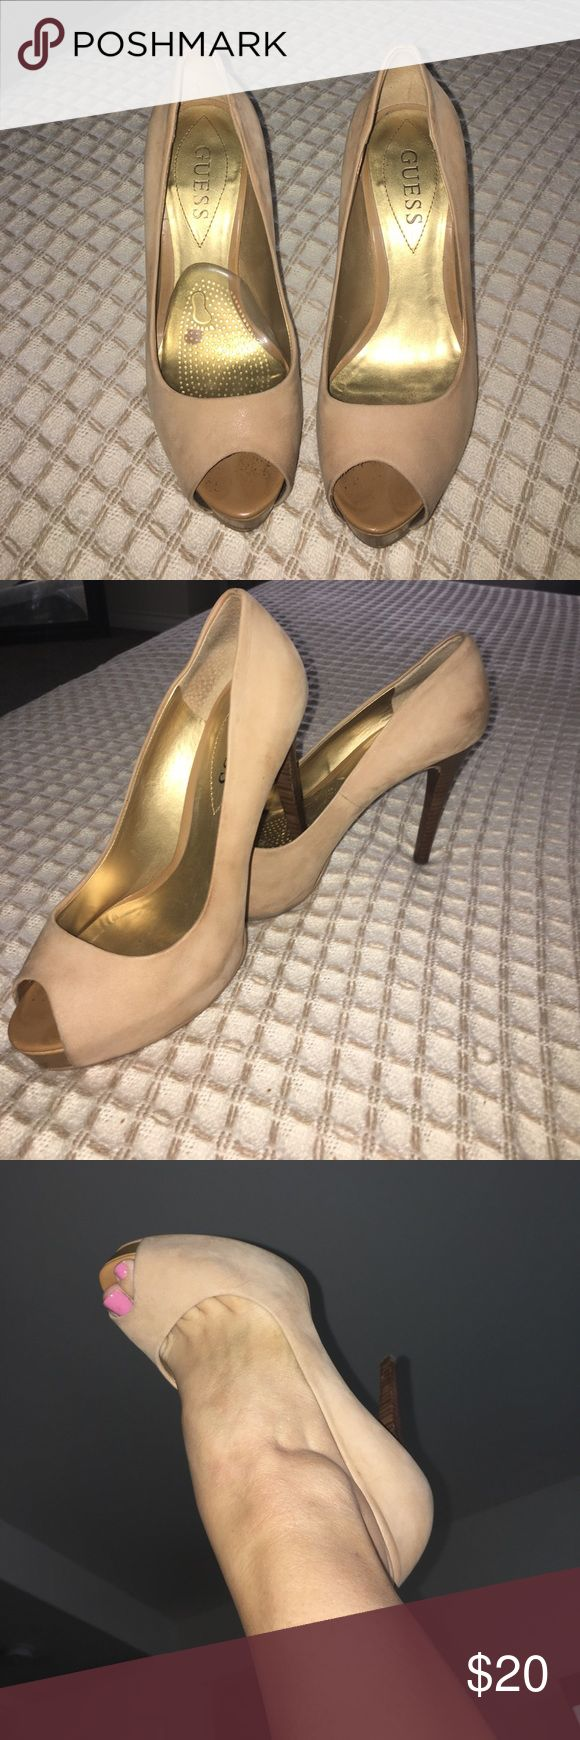 Nude Guess platform peep toe heel Leather nude peep toe platform. Just needs some leather cleaner and will look new again. Super comfortable!! Moving and everything must go!!! Guess Shoes Platforms